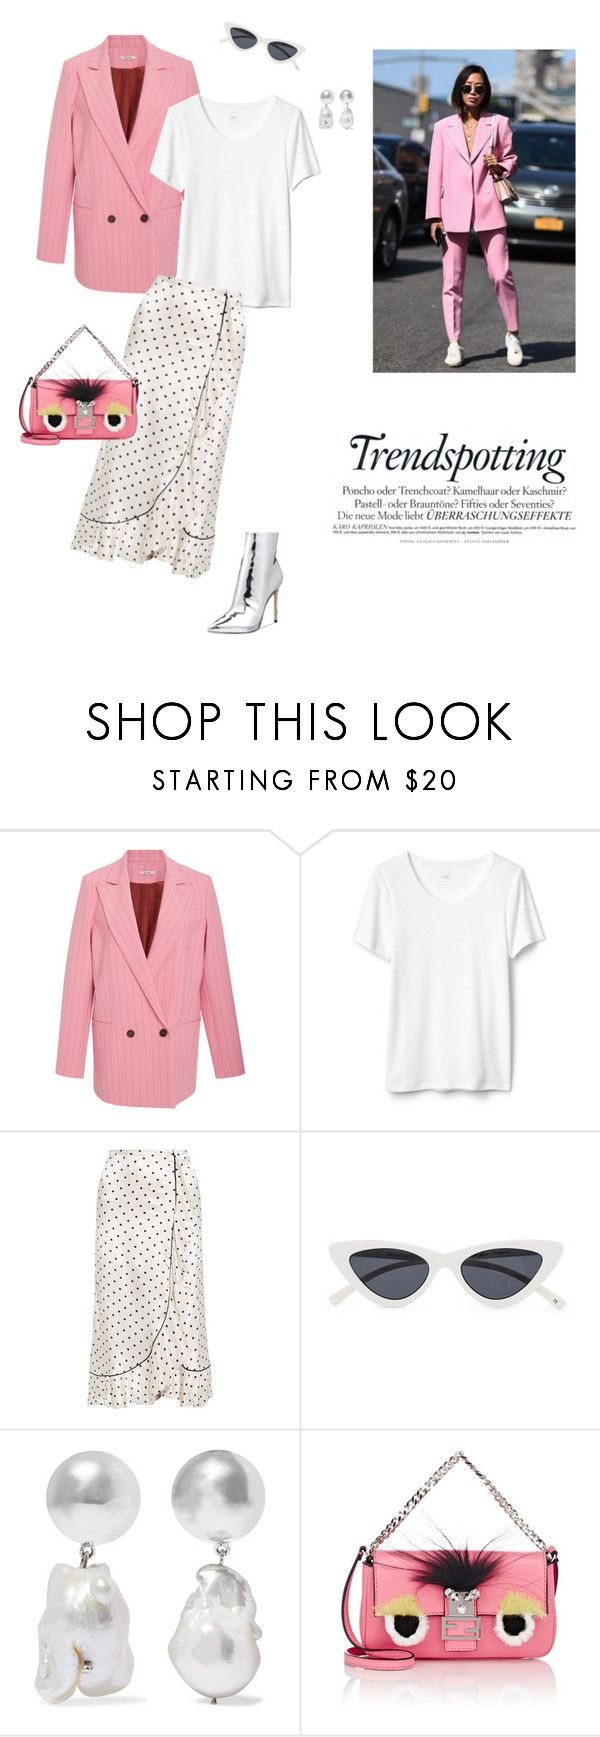 """14/02"" by dorey on Polyvore featuring Ganni, Le Specs, Sophie Buhai, Fendi and ALDO"